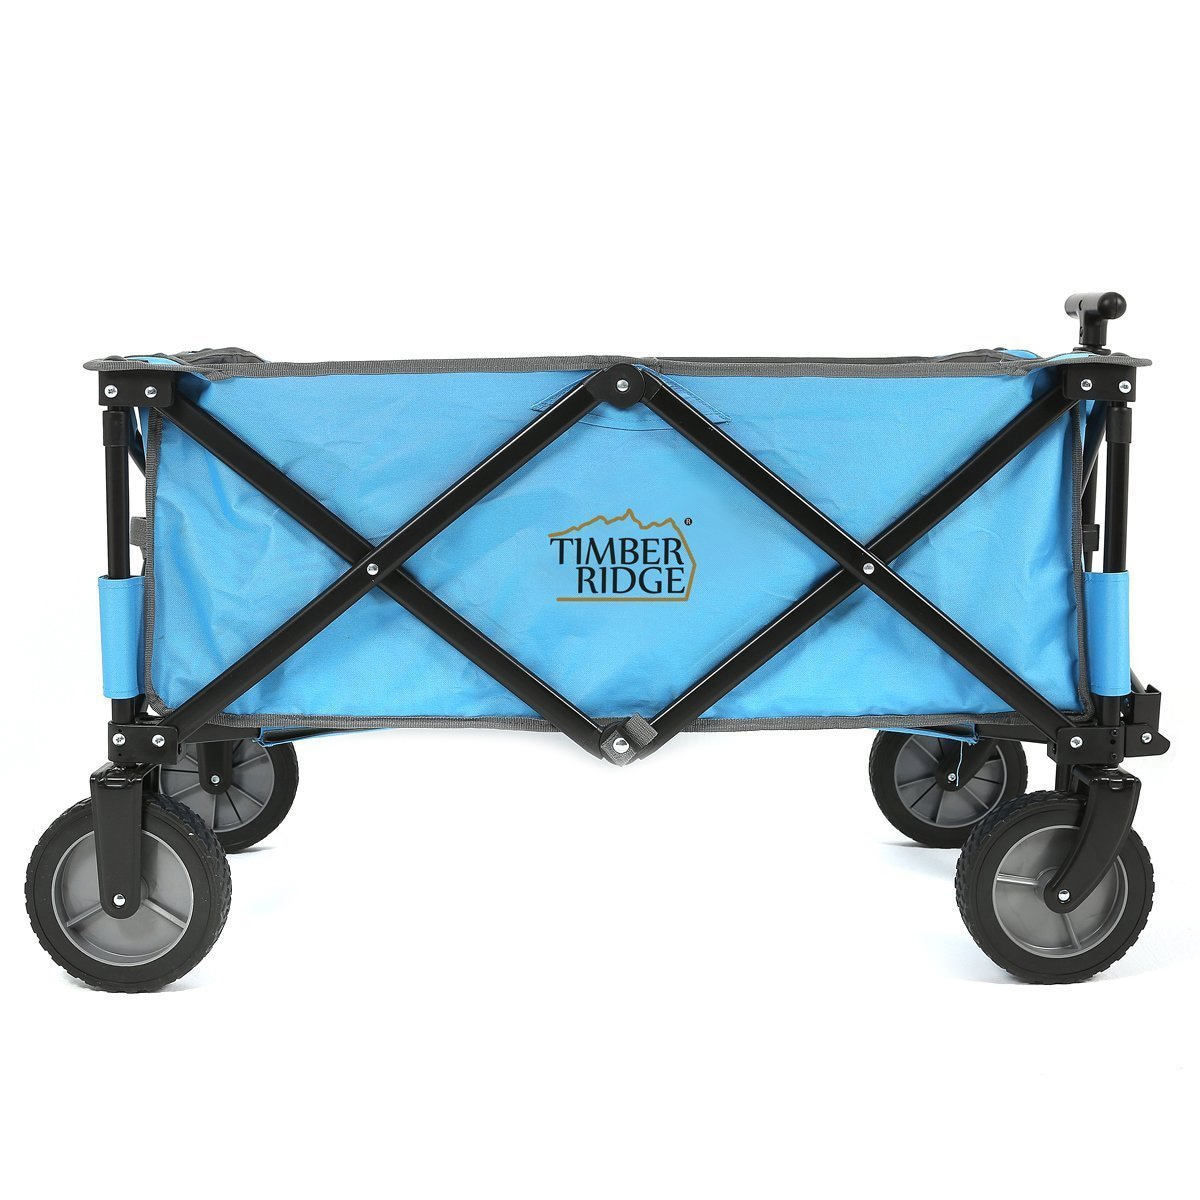 Shop TimberRidge Blue Black All-terrain Collapsible Folding Camping Wagon Garden  Cart - Free Shipping Today - Overstock - 12308080 b3a285027f